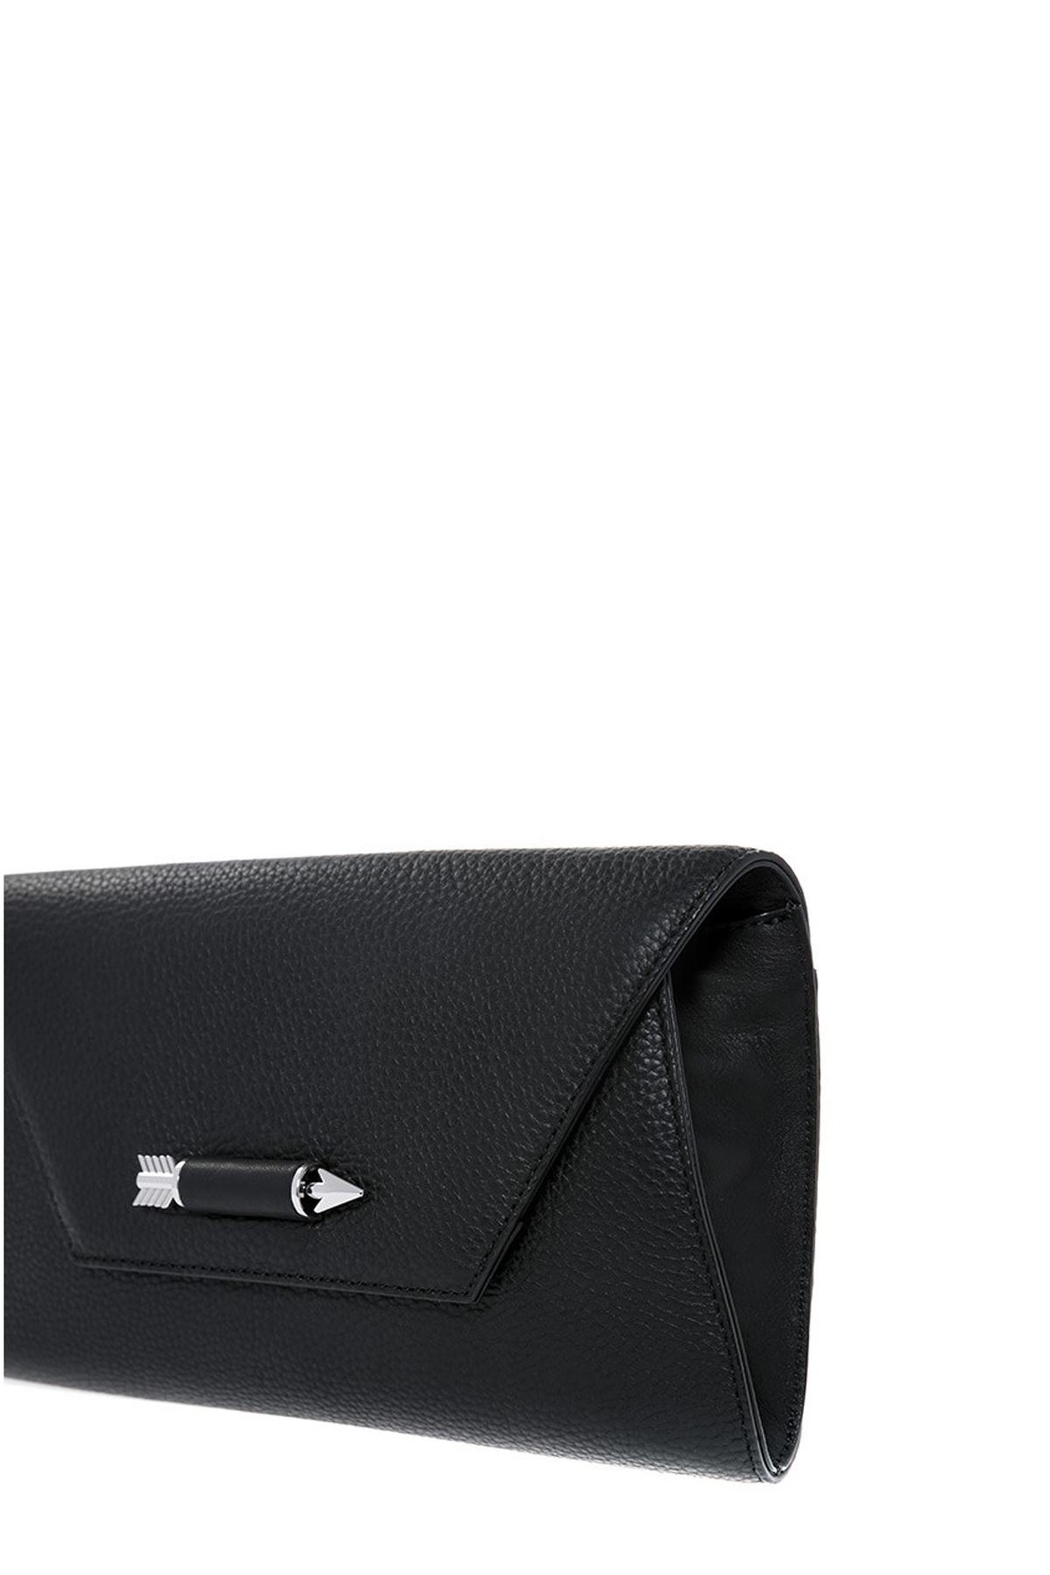 Mackage Flex Leather Clutch - Side Cropped Image